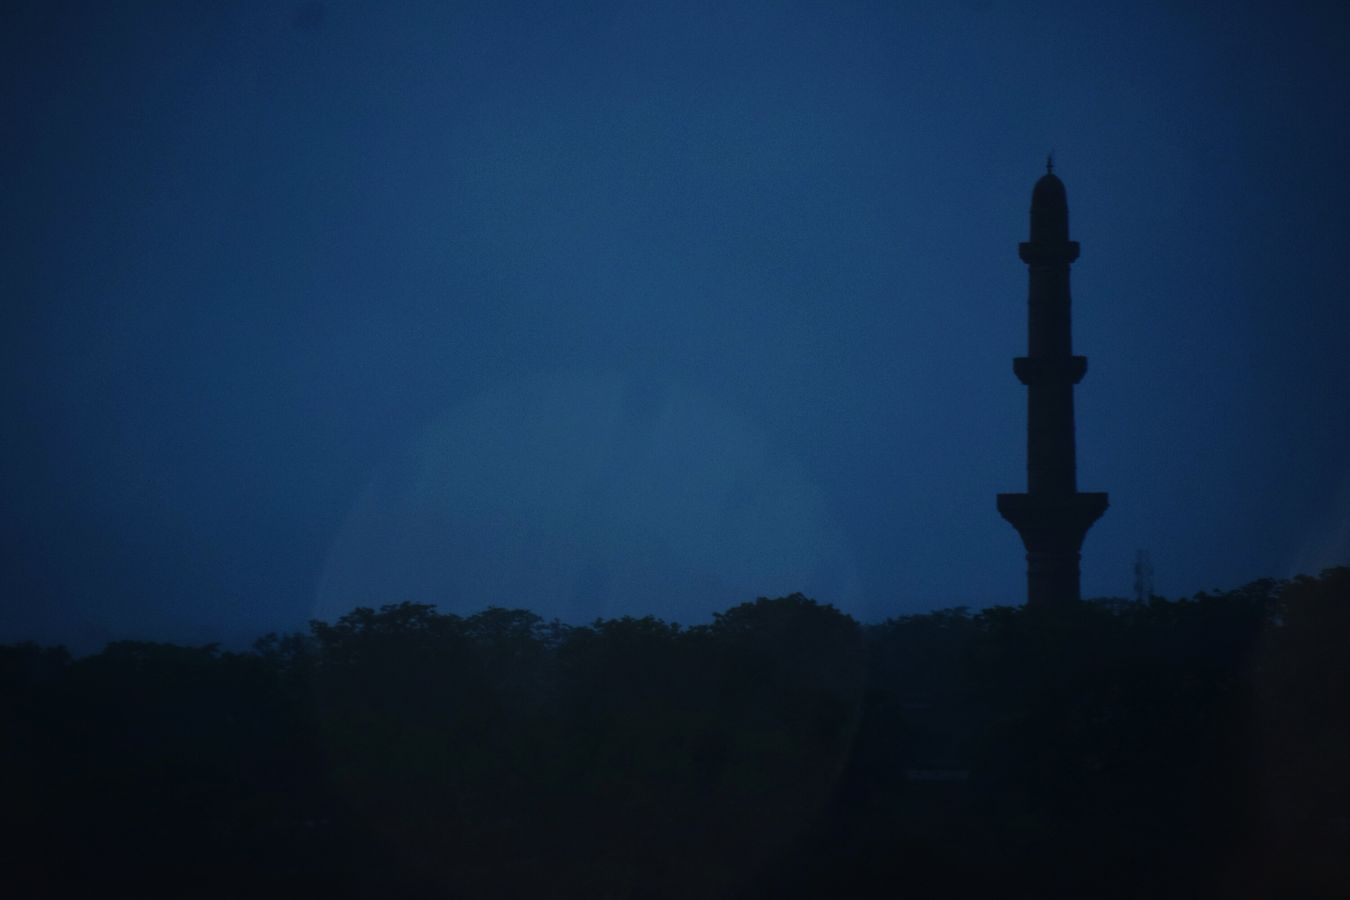 Morning view of Chandminar, Daulatabad Fort Hanging Out Taking Photos Check This Out That's Me Hello World Enjoying Life Hanging Out Taking Photos Rainy Days Enjoying Life Hello World Great Atmosphere Best  Nature Photography Check This Out Rainy Days☔ The Tourist Aurangabad Nikon D3300 Anmol Kekarjawlekar Monocolor Craetive Streetphotography My Snap Shots